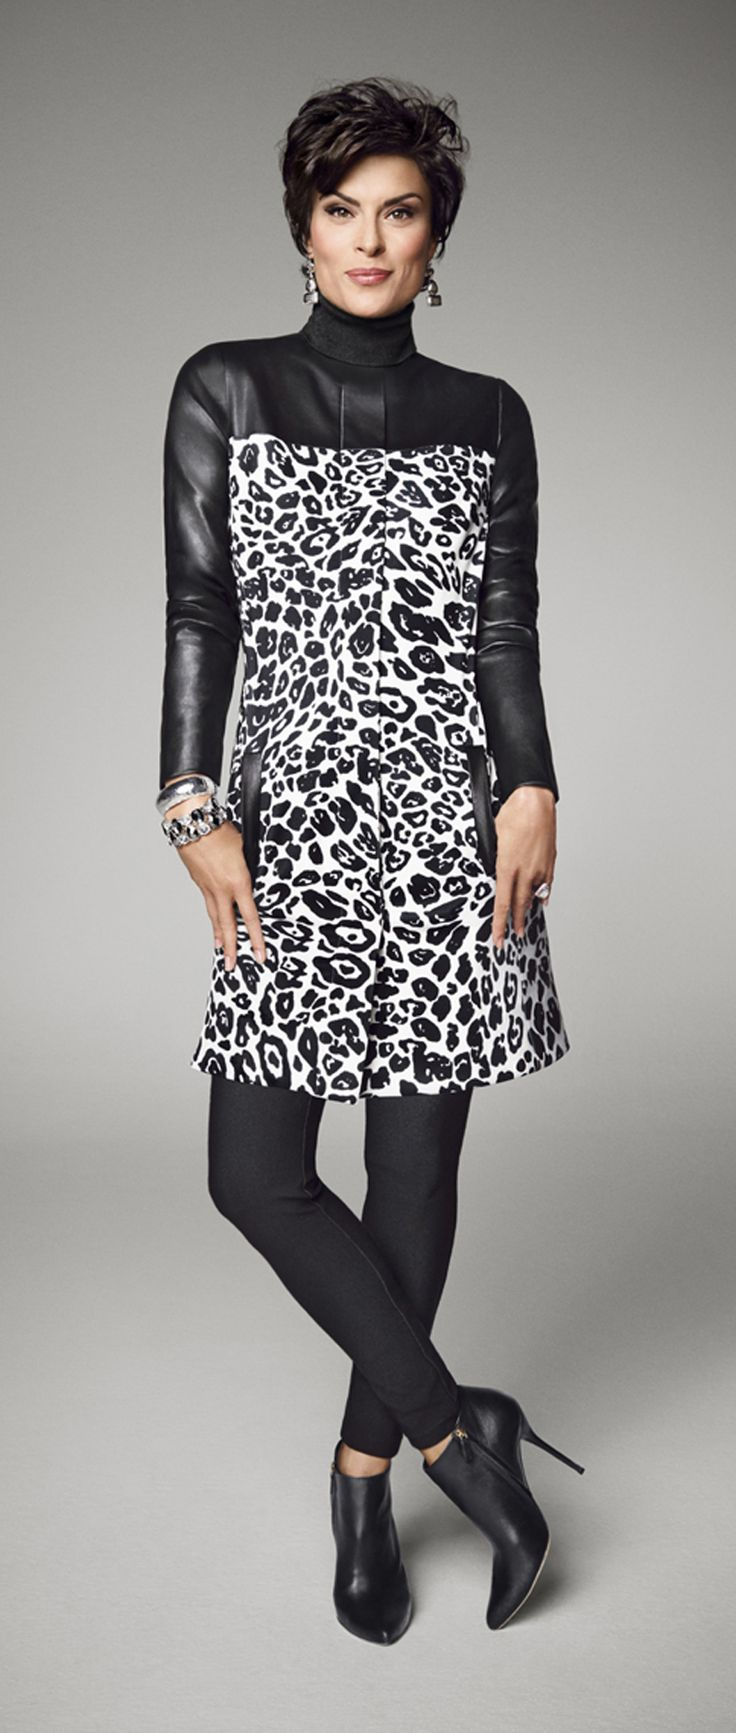 Go wild with a pieced jacket. Chico's Animal Print Duster.